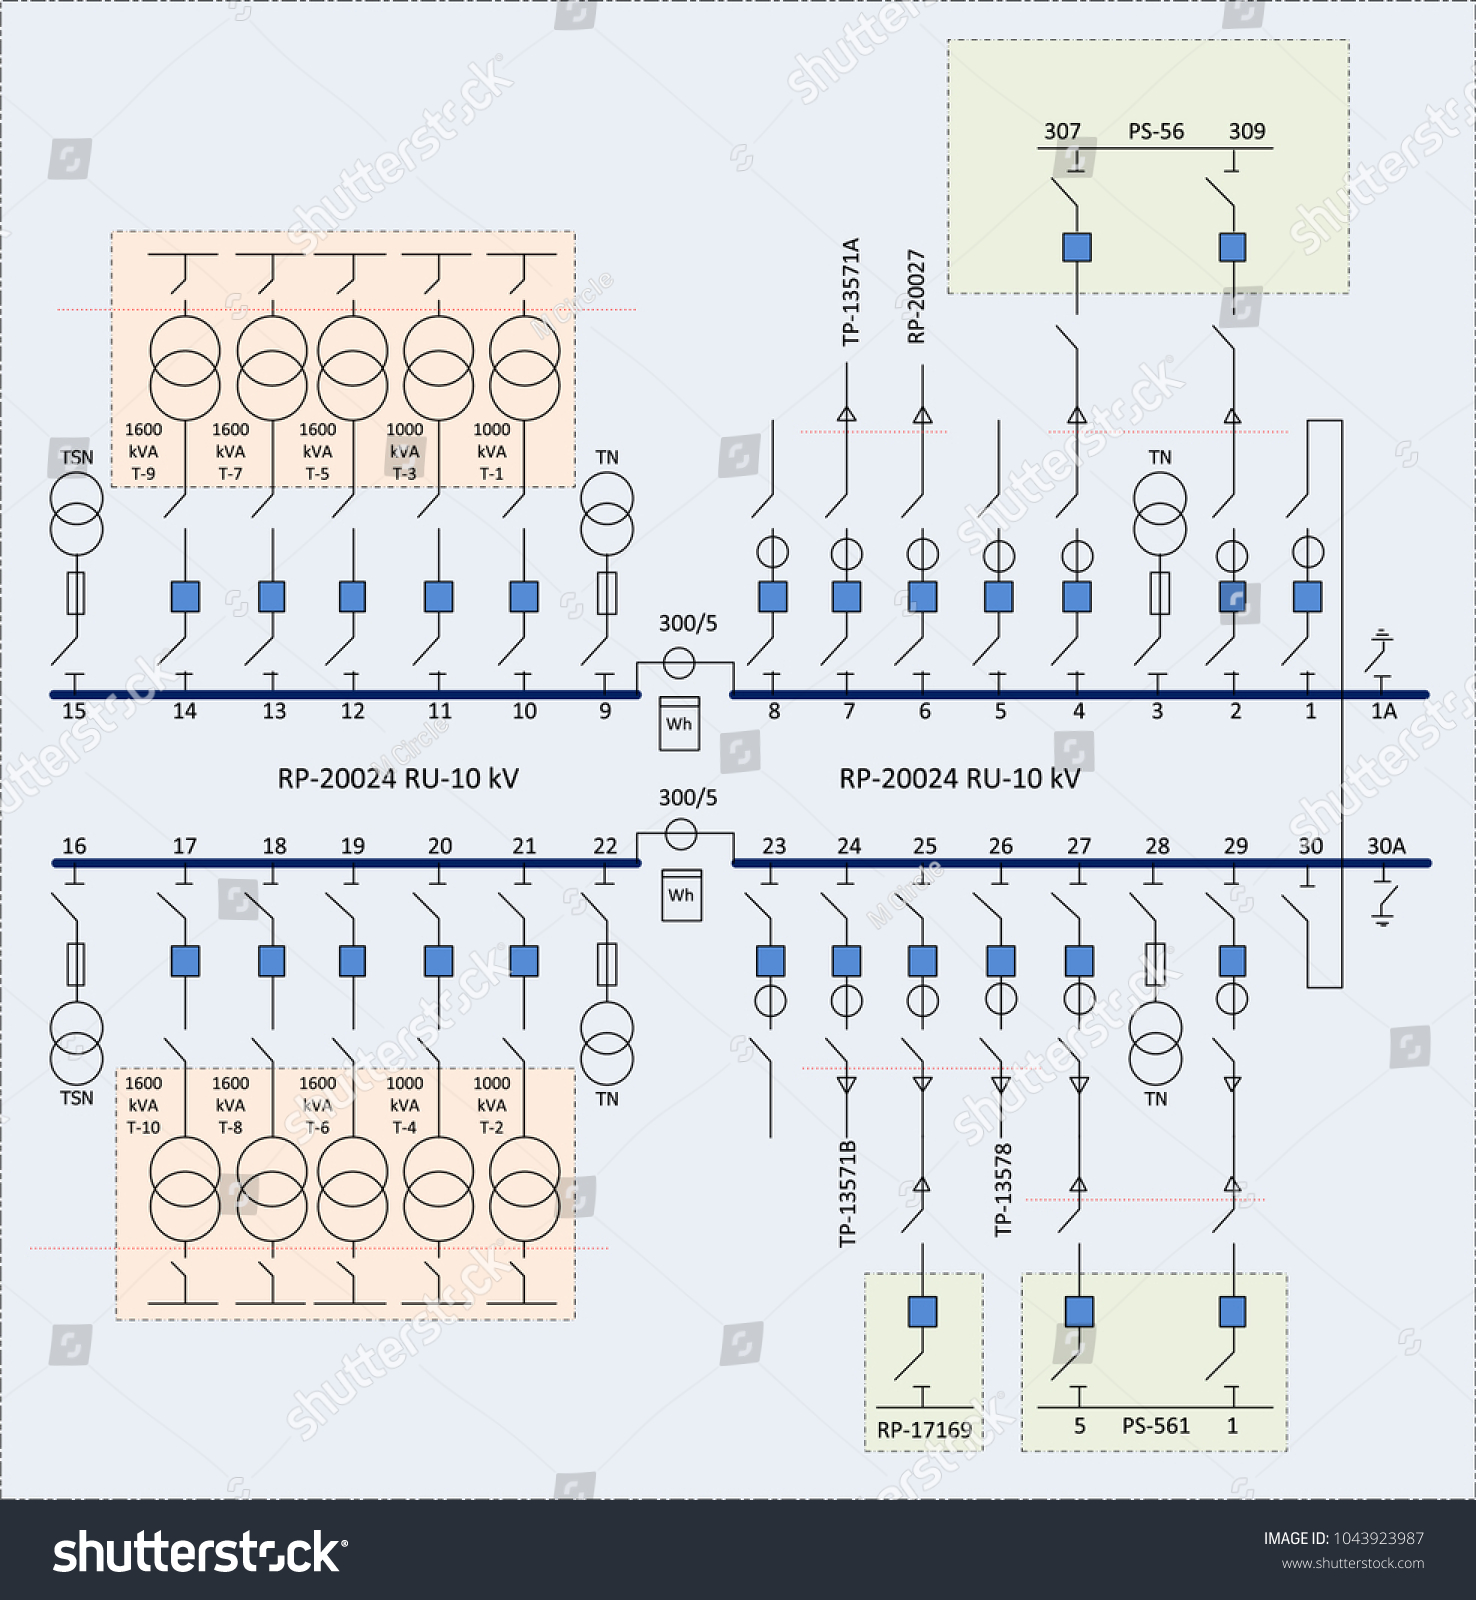 Edwards Electrical Supply Transformers Wiring Diagram